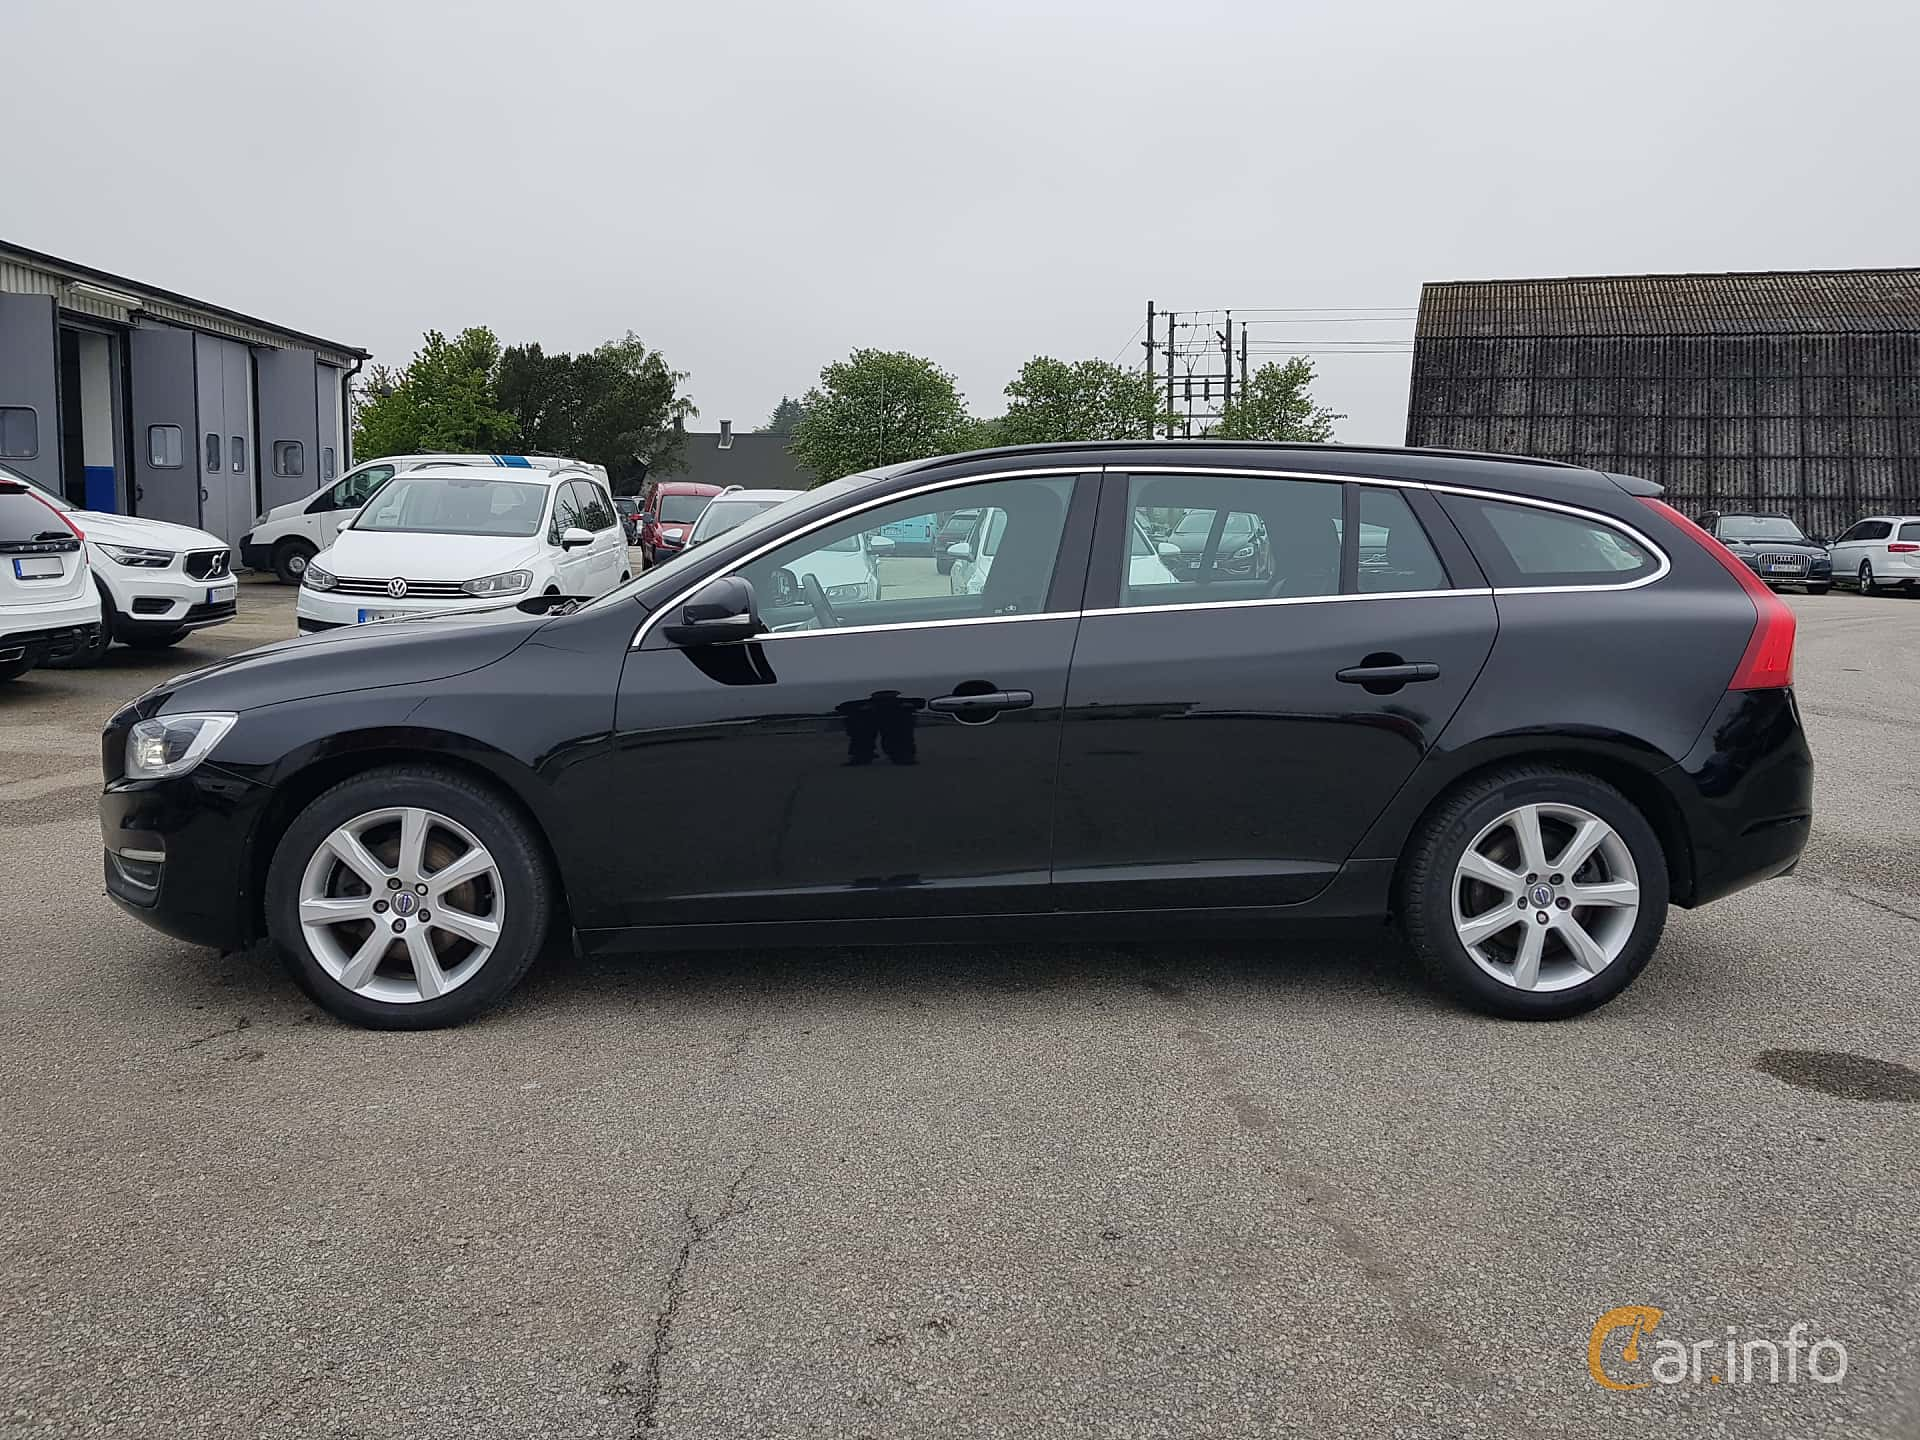 Volvo V60 D4 Manual, 190hp, 2017